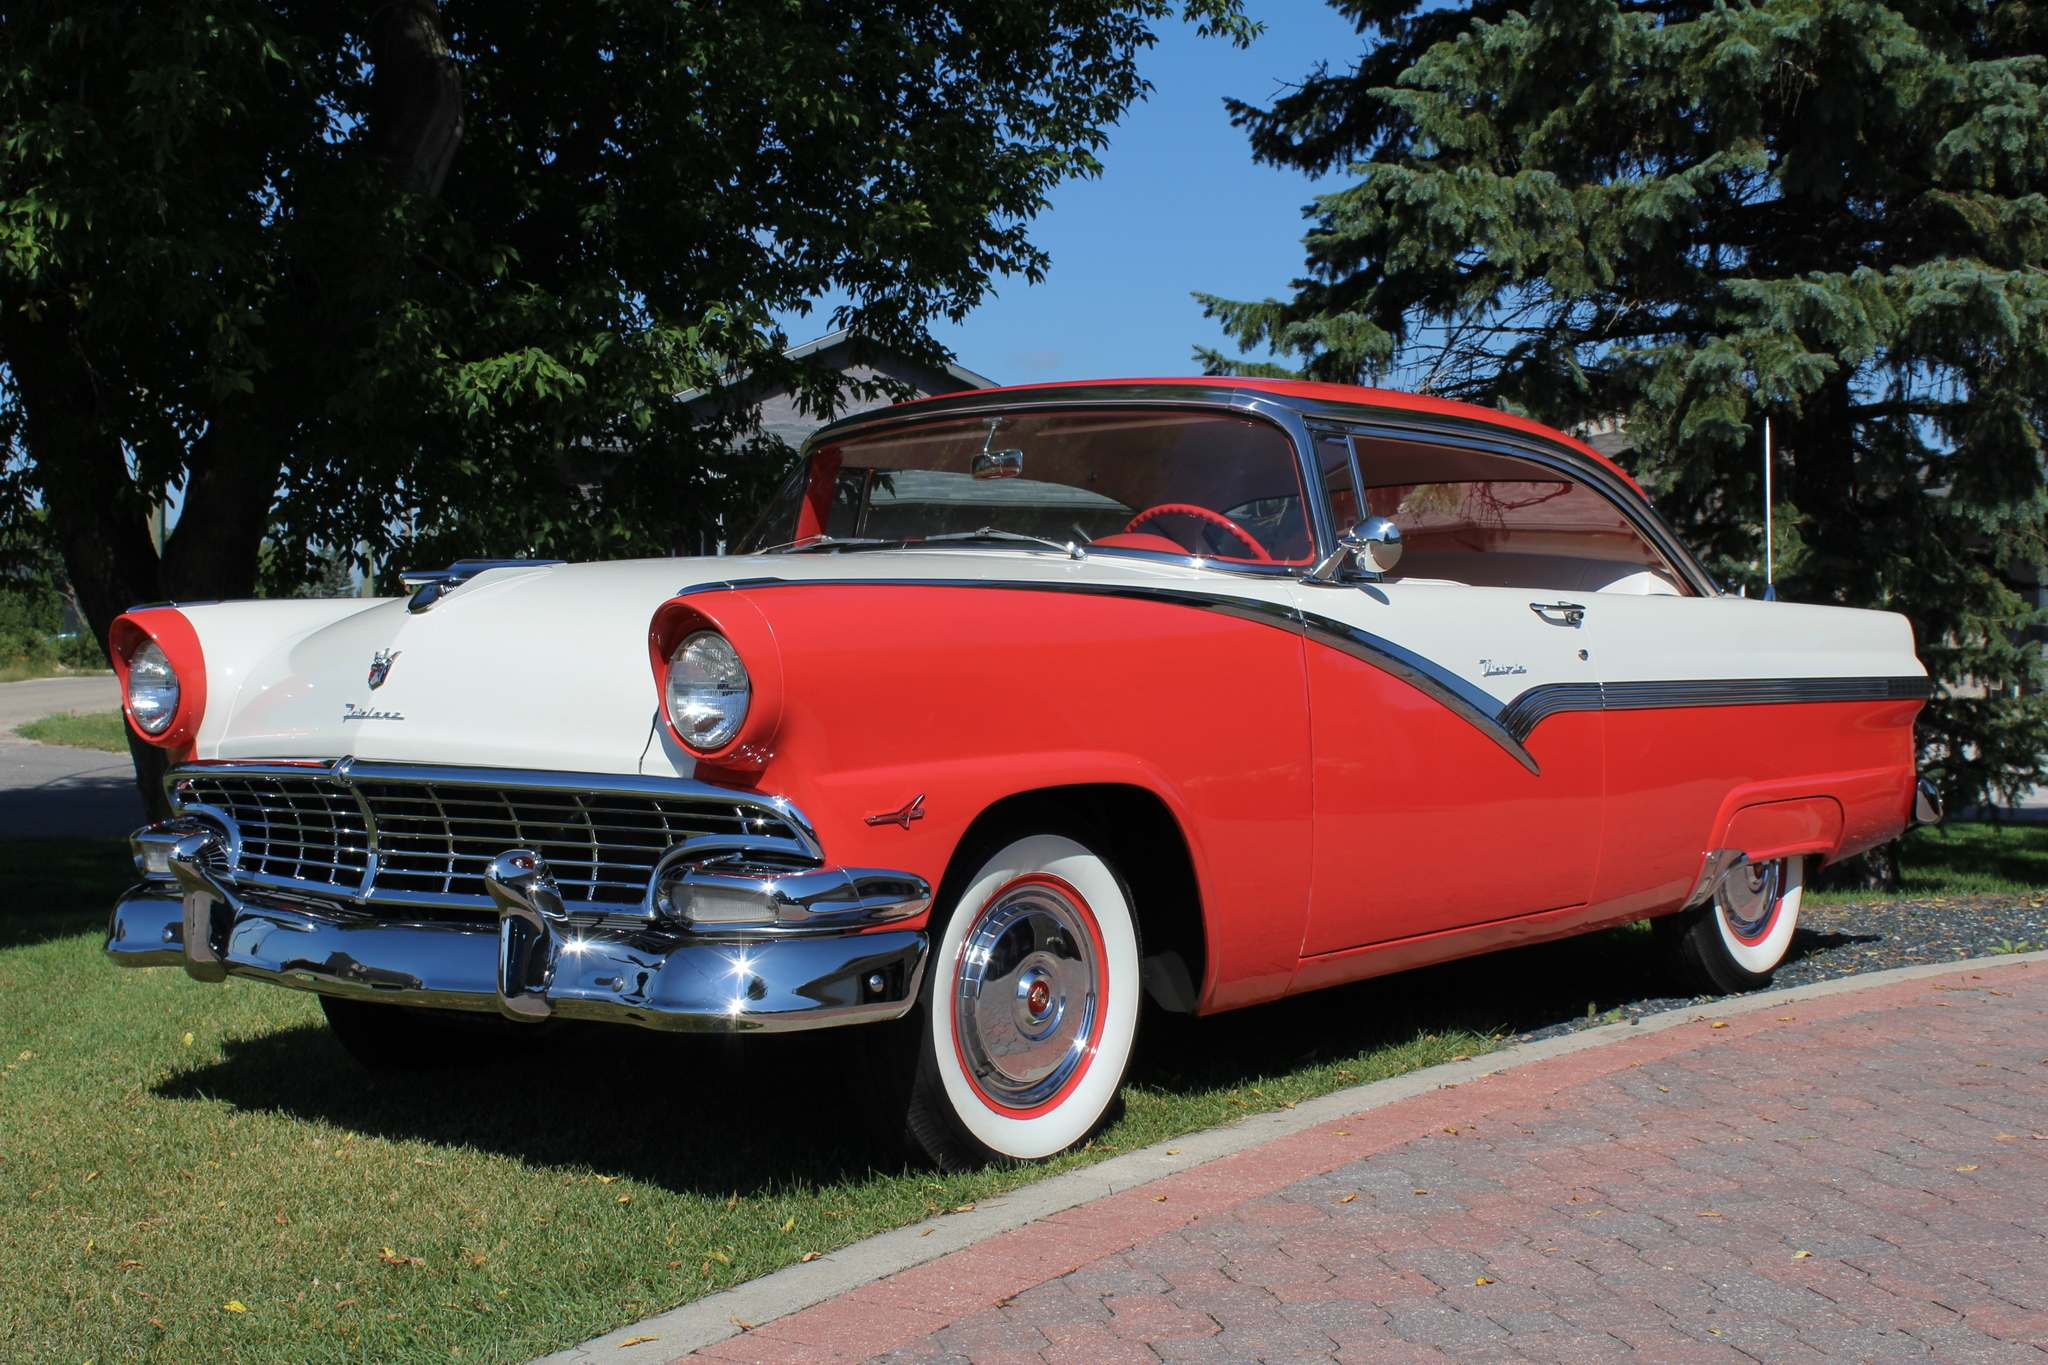 LARRY D'ARGIS / WINNIPEG FREE PRESSPat Fletcher always loved Fords from the 1950s, so he didn't hesitate last fall when a 1956 Fairlane Victoria hardtop came up on the auction block.